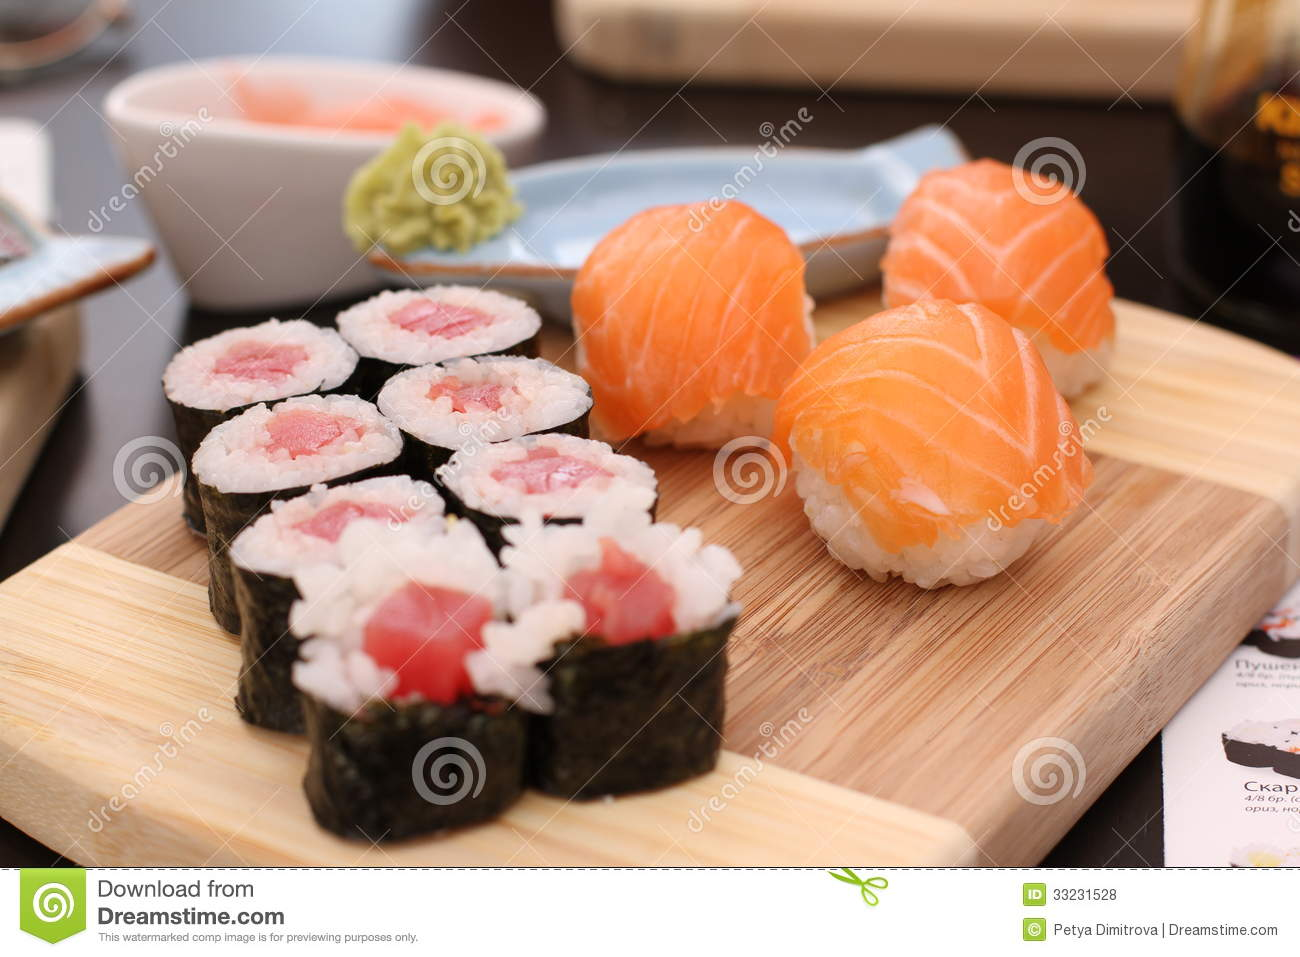 how to eat sushi with wasabi